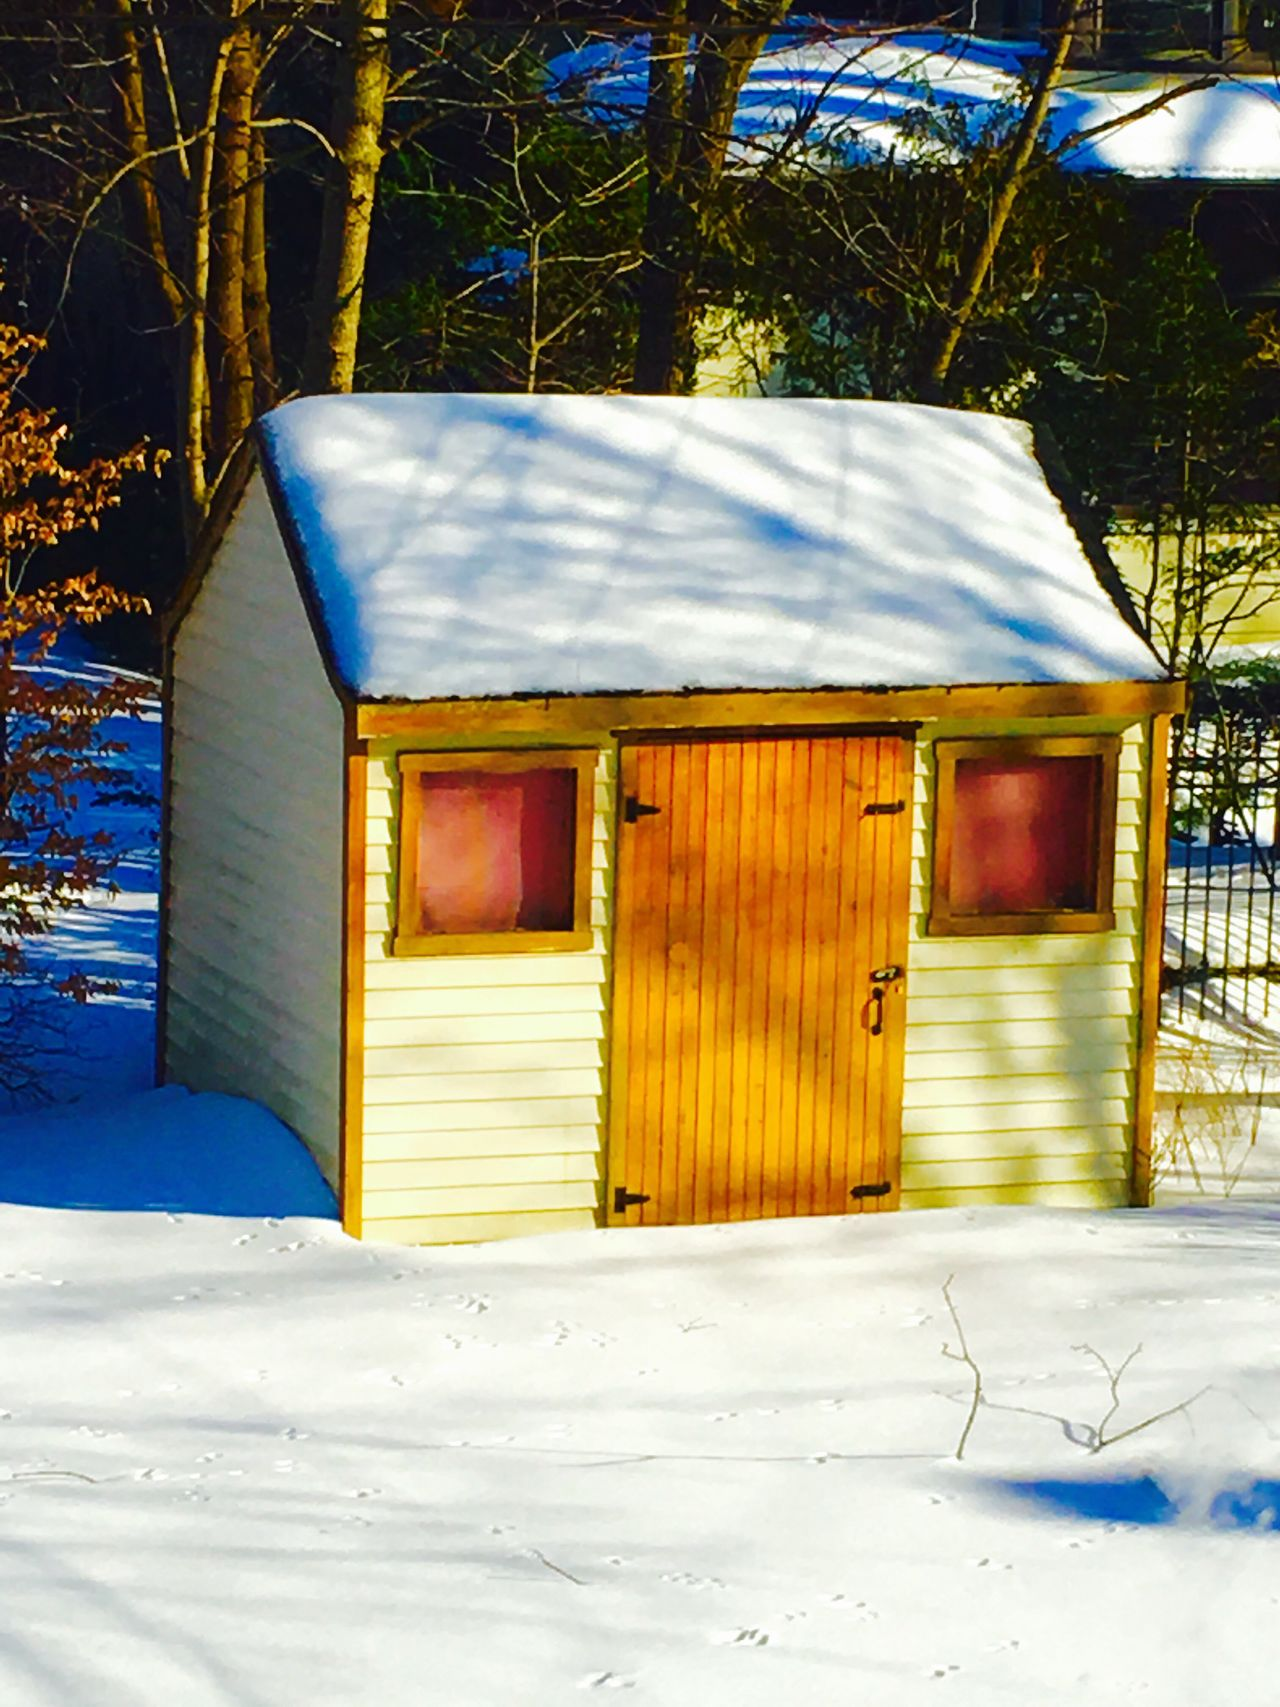 Cabanon Neige Hiver Winter Shack Iphone6s Shotwithiphone6S